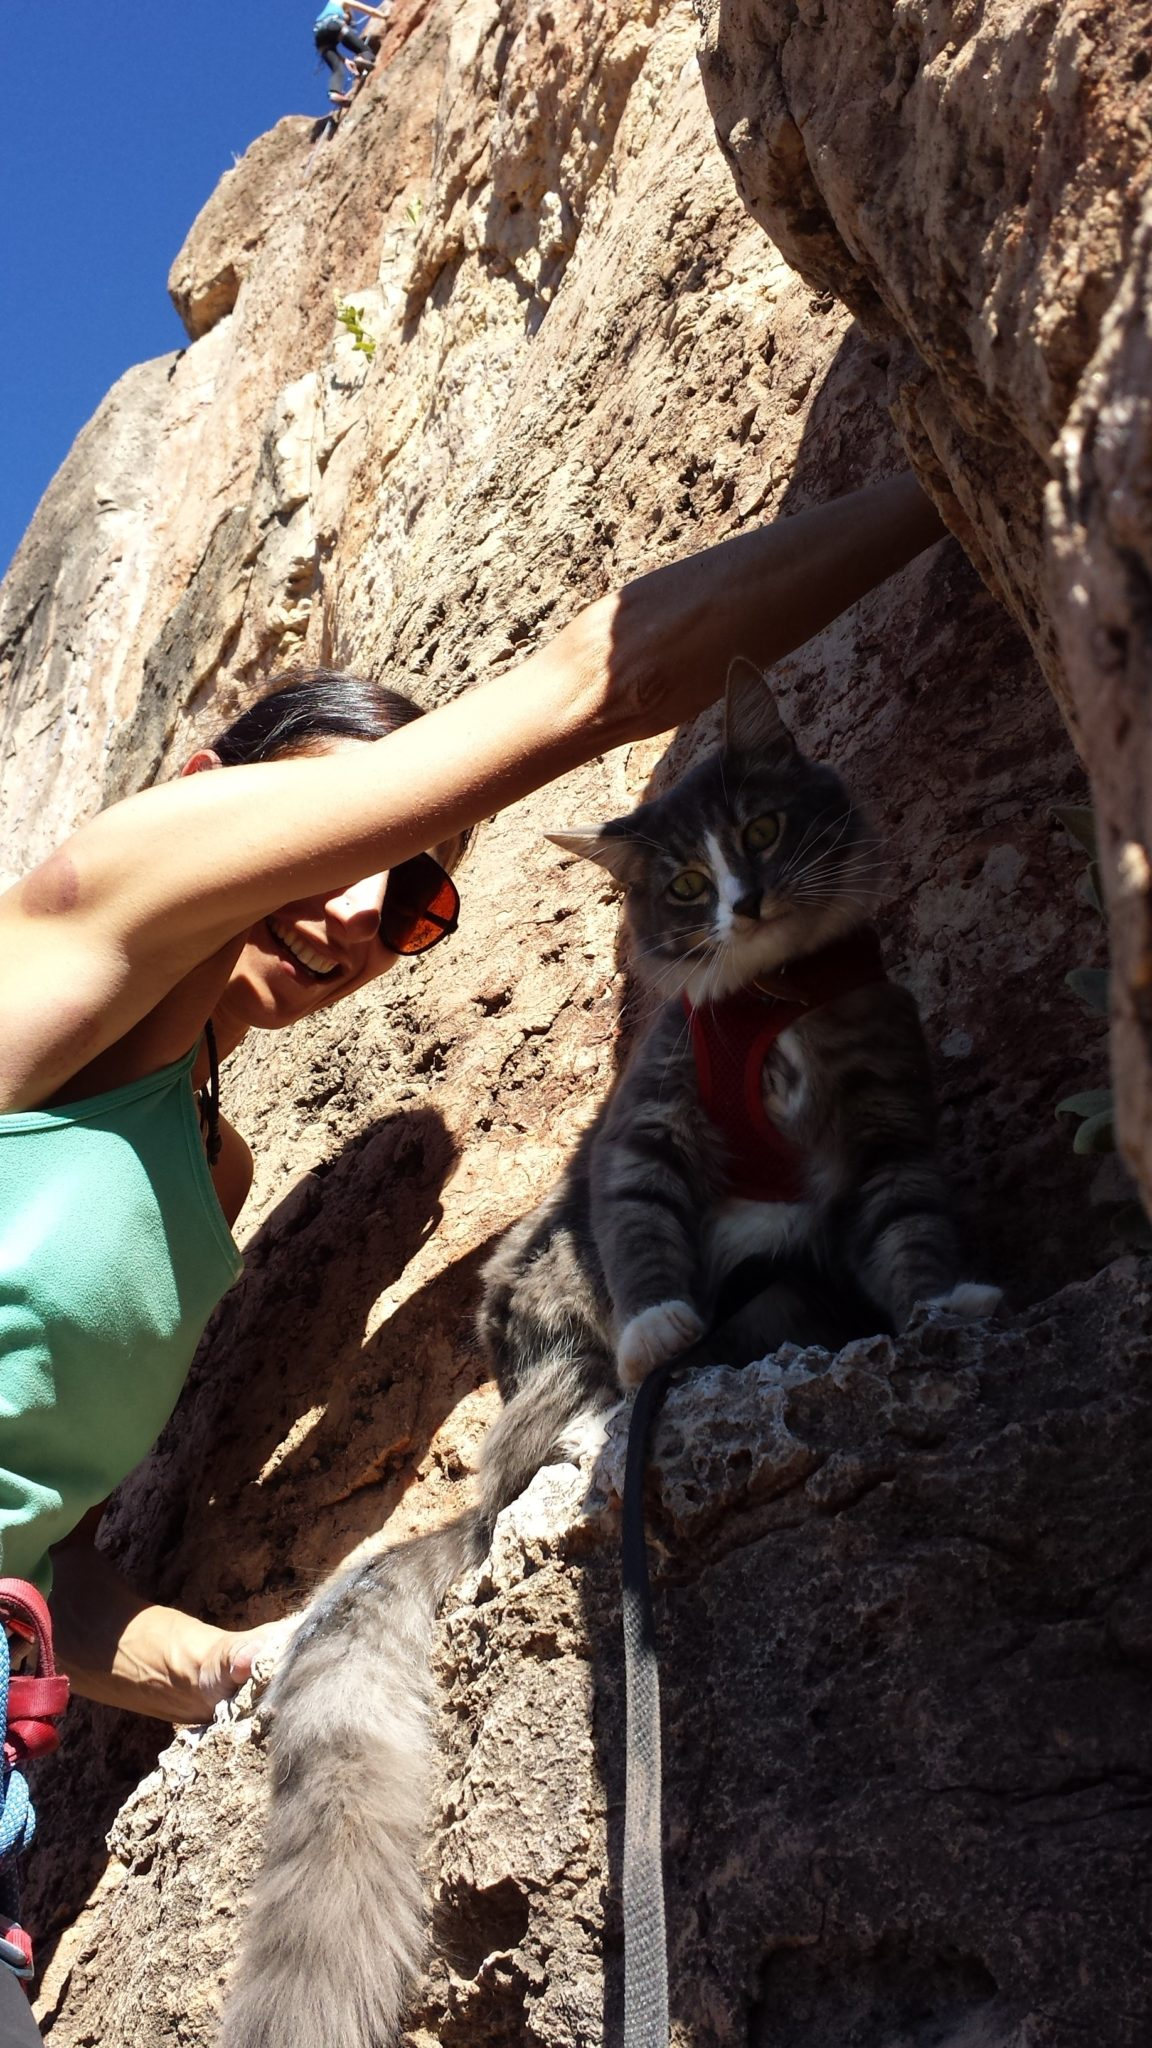 Denali takes a cool break in the shadows during one of his rock climbing expeditions.